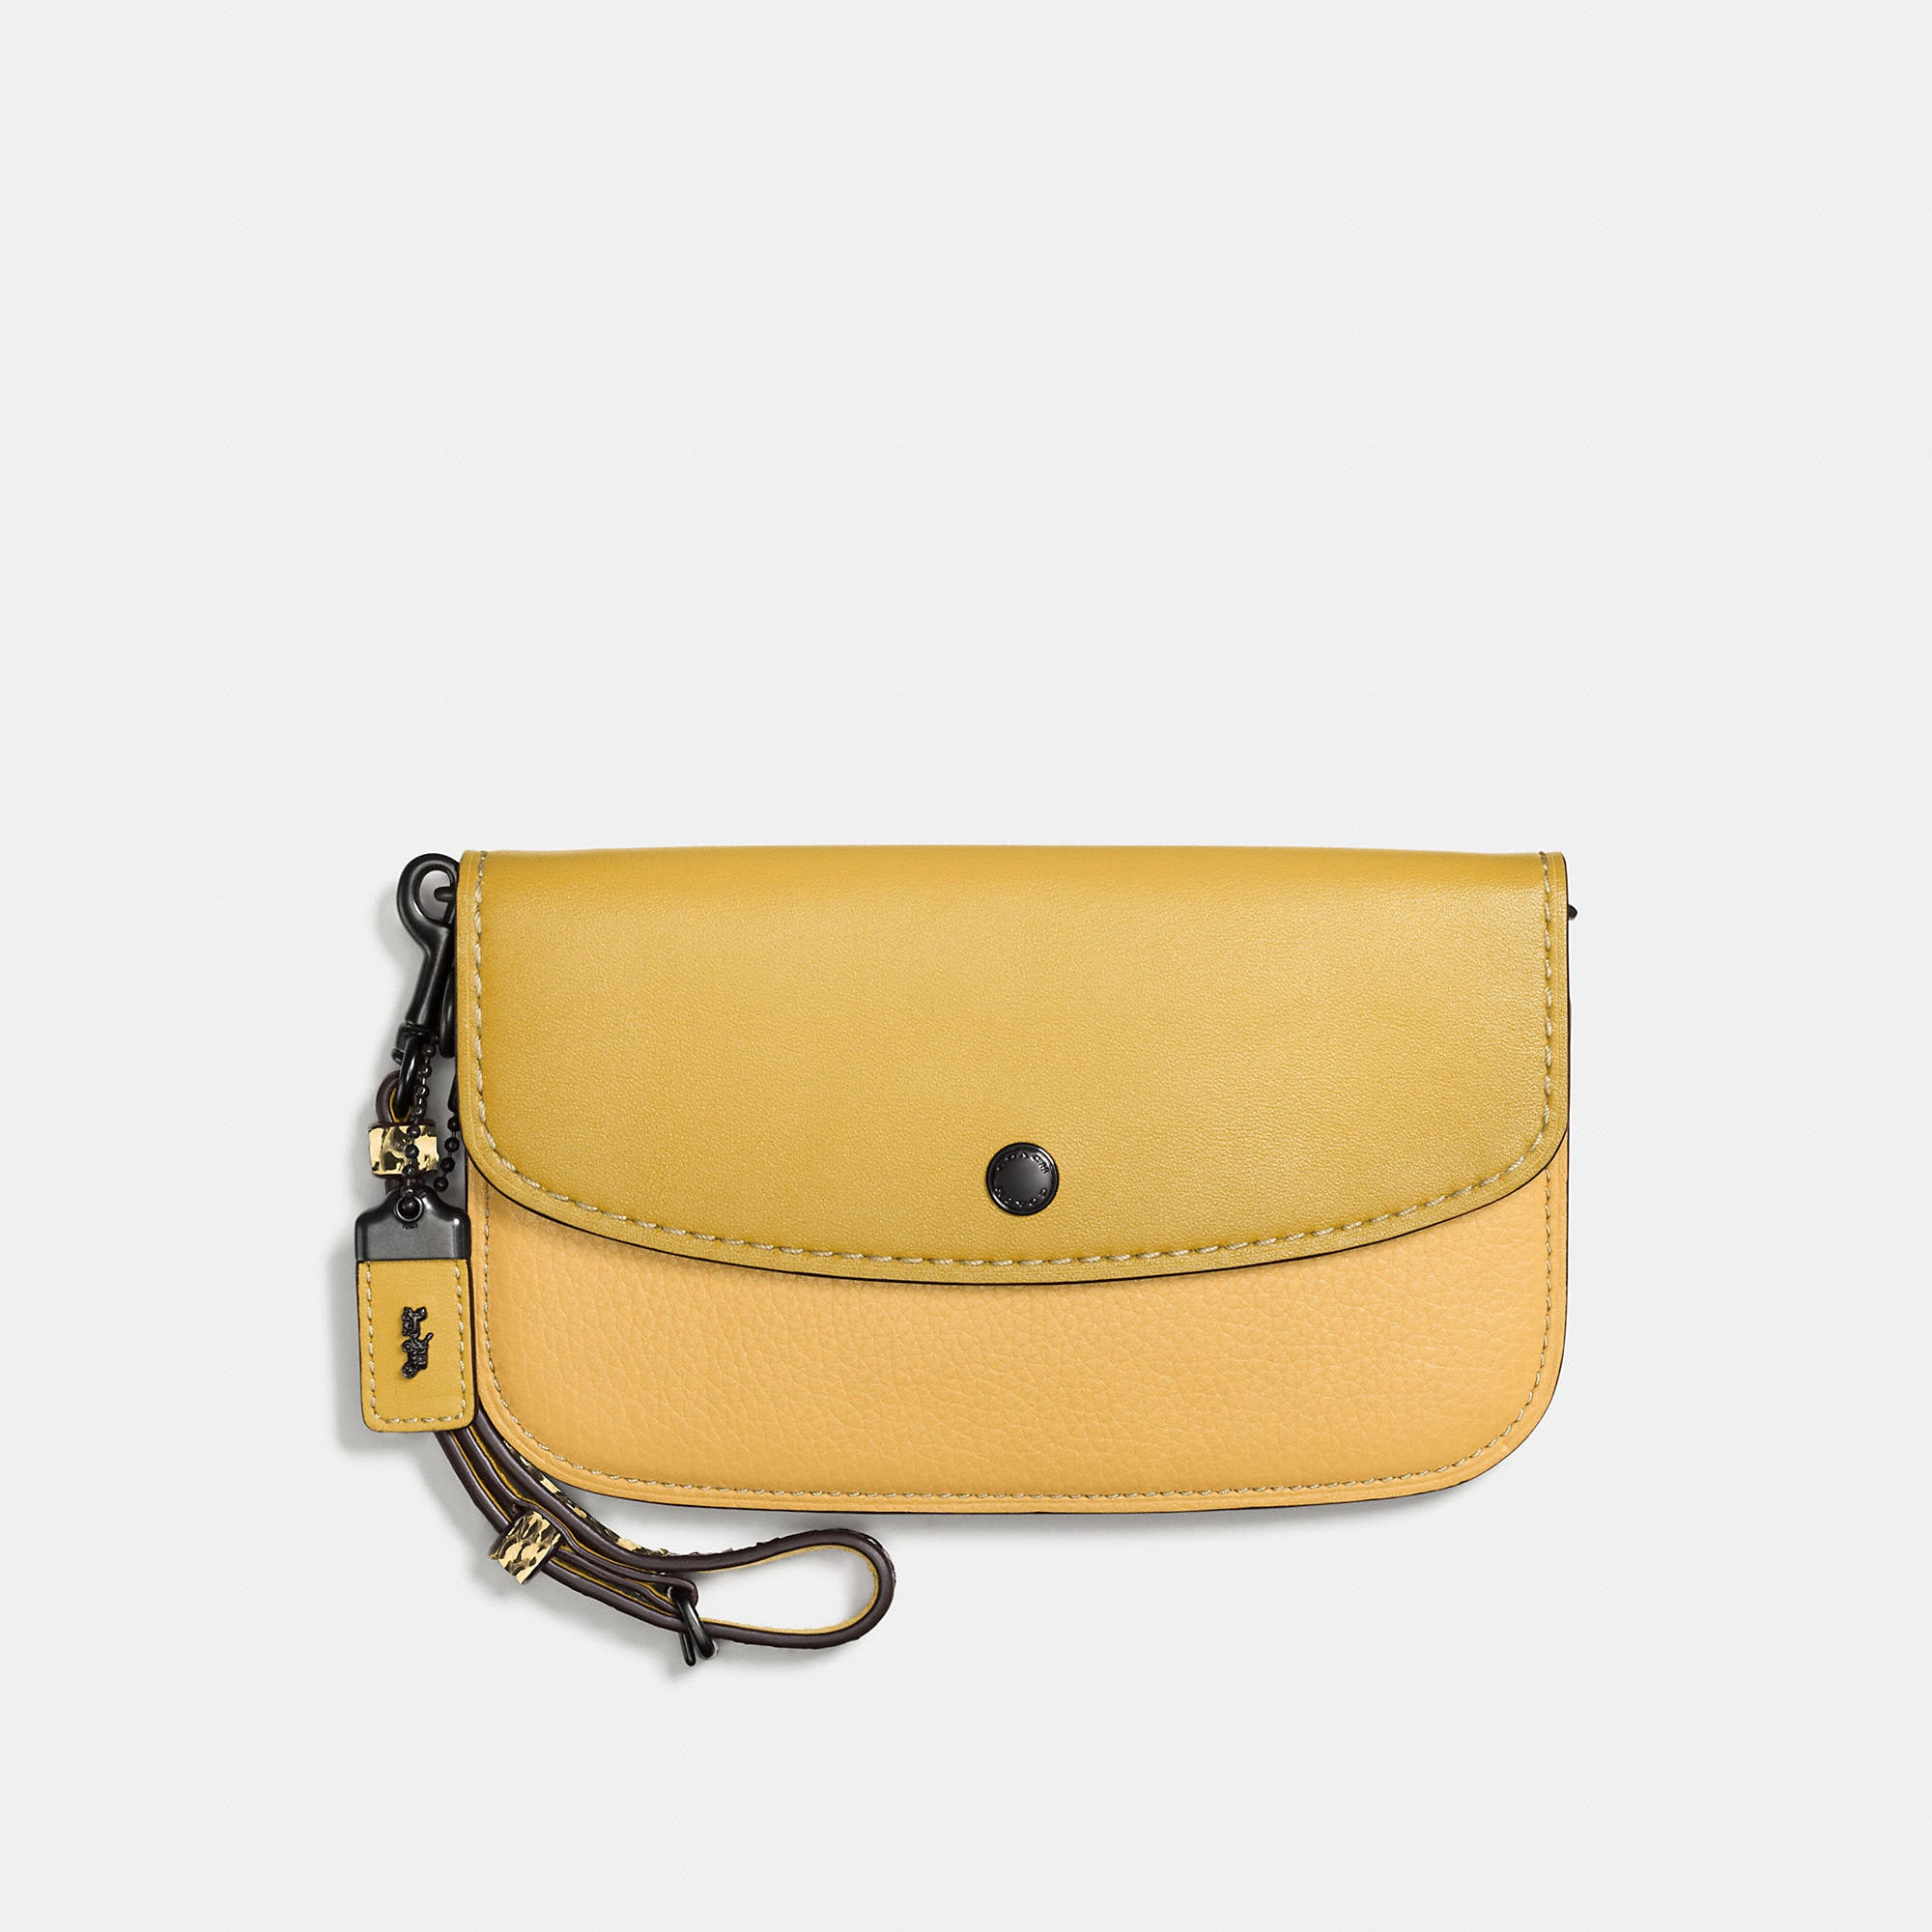 Coach Colorblock Snake Handle Clutch In Glovetanned Leather